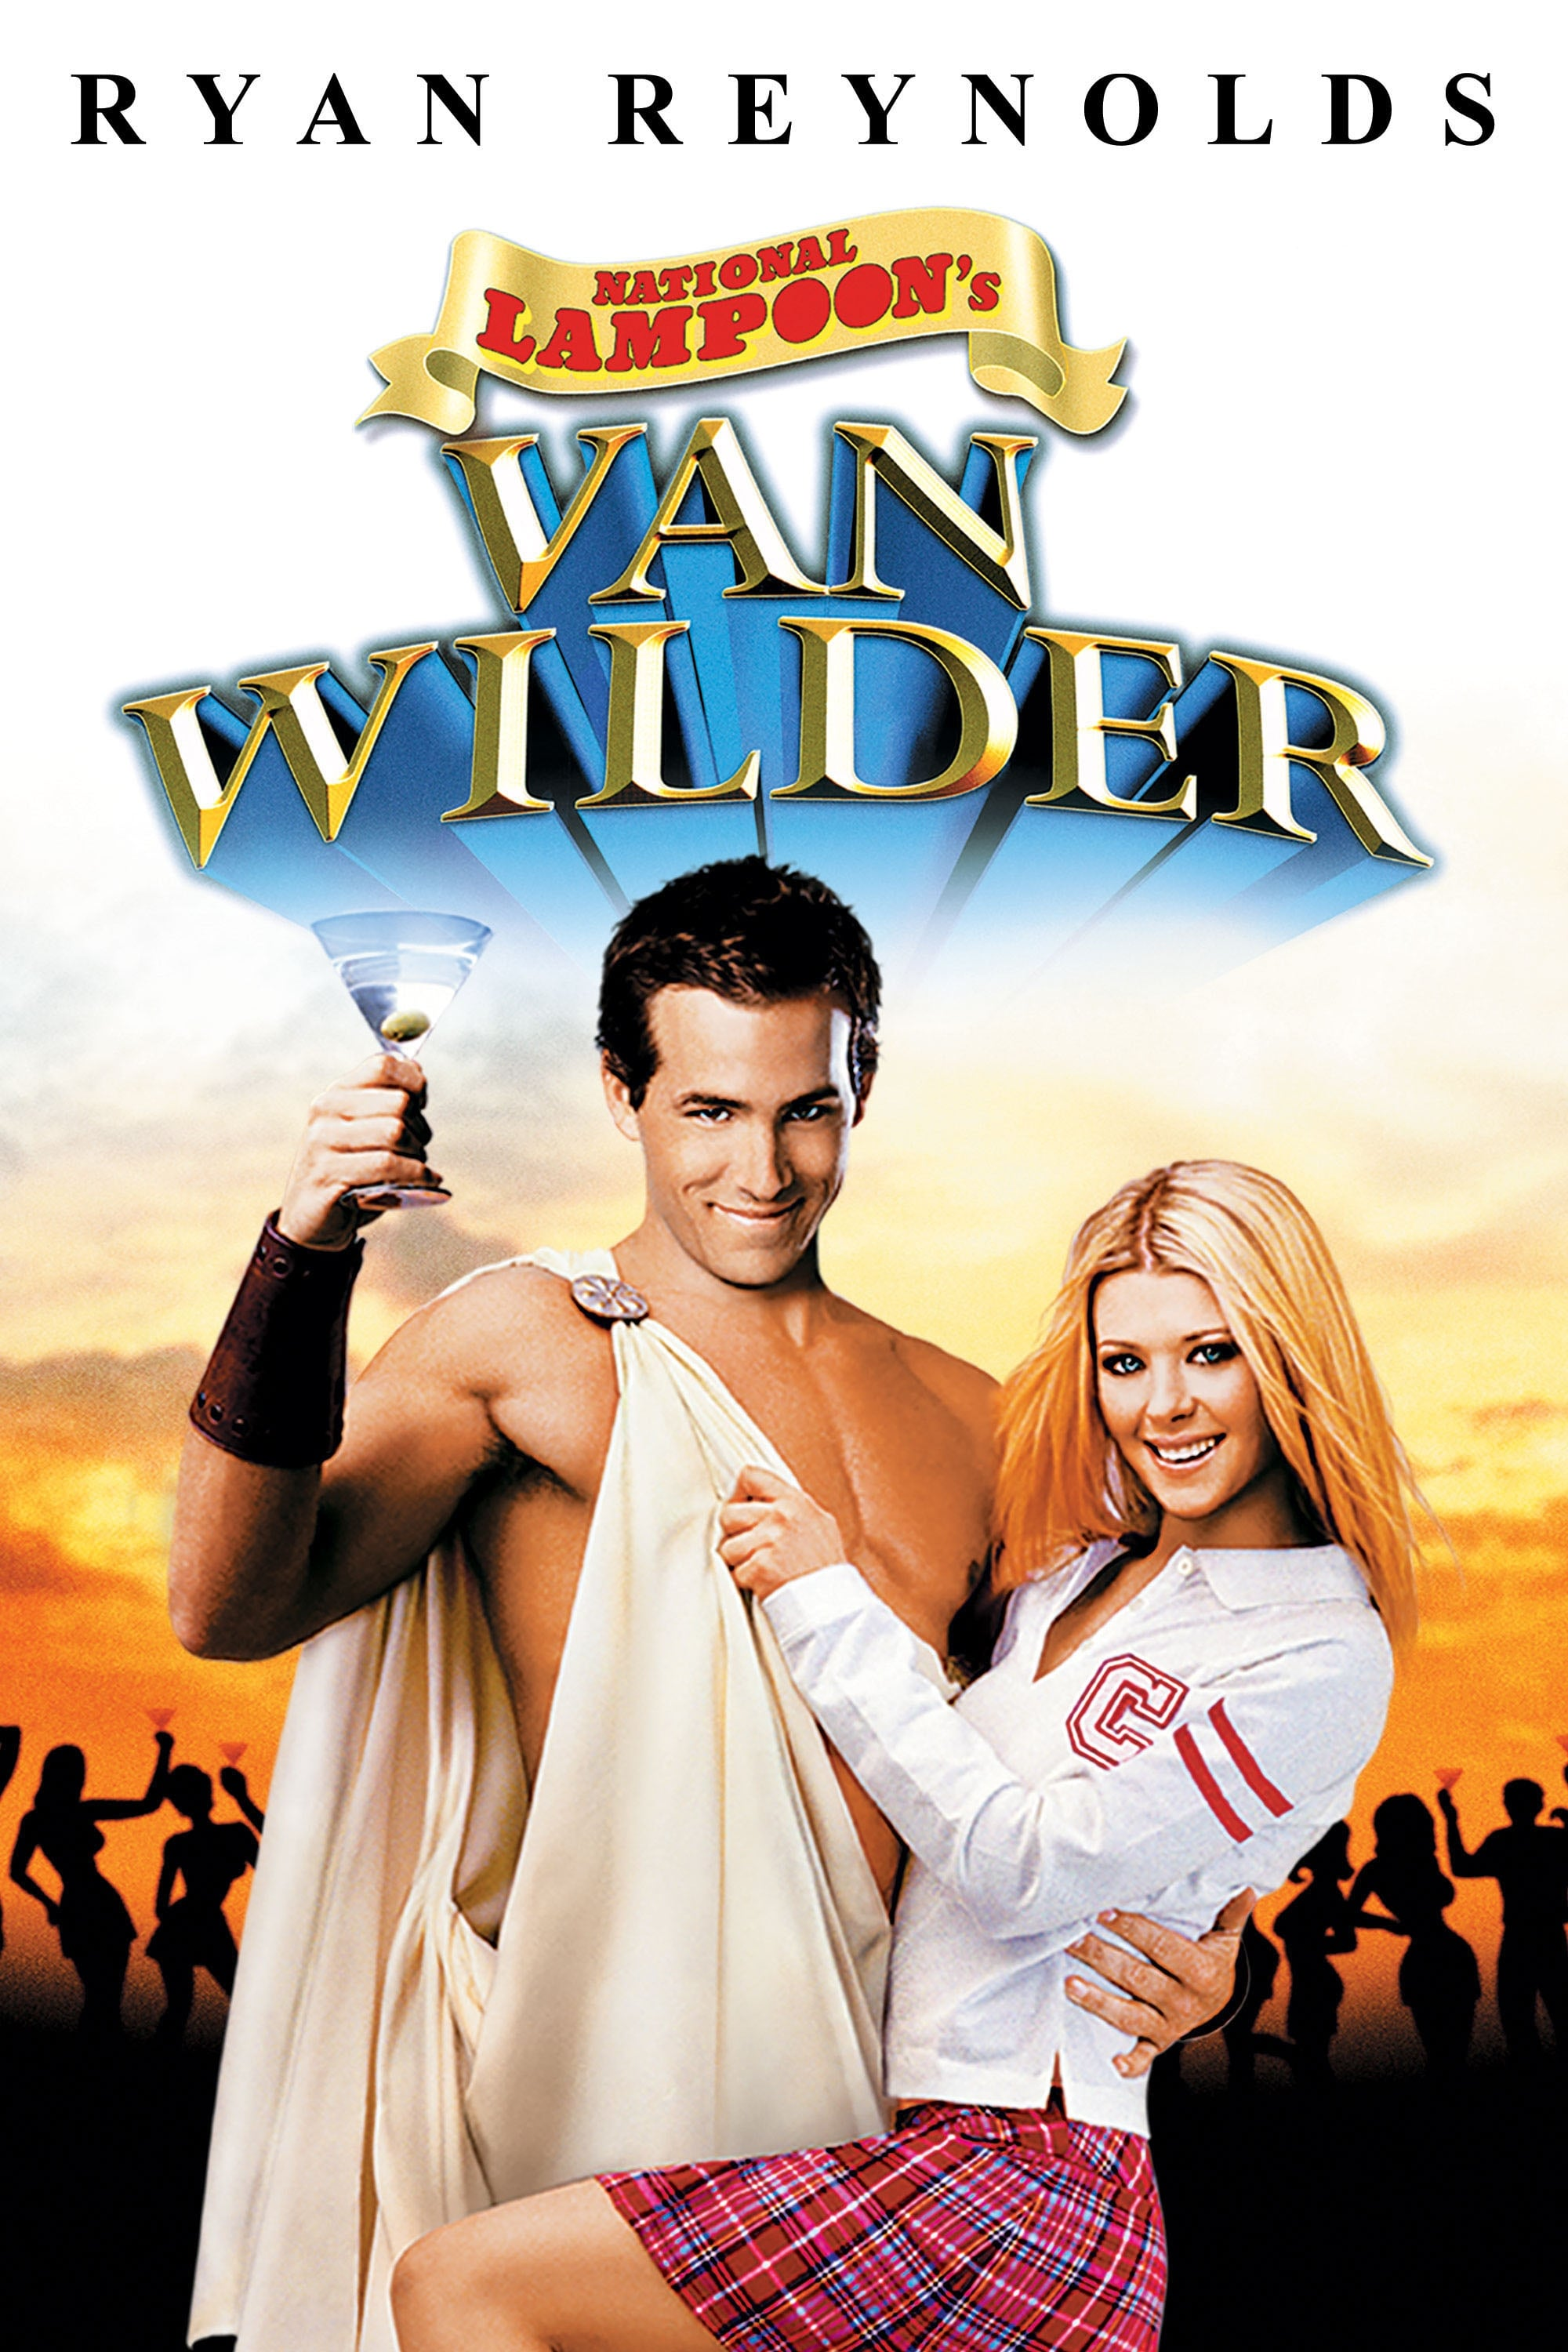 National Lampoon's Van Wilder on FREECABLE TV